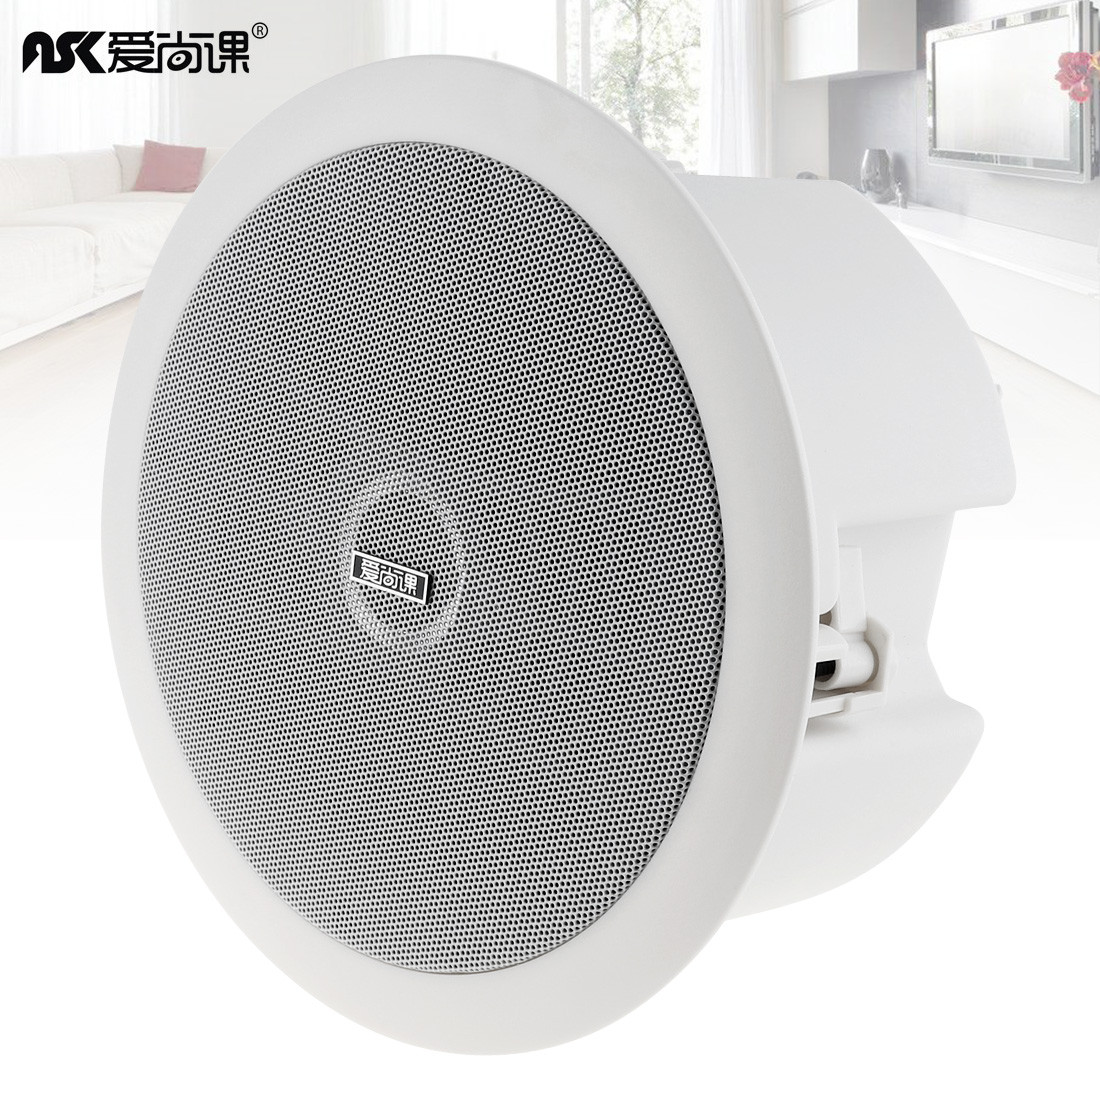 6 Inch 10W Round High Sensitivity Coaxial Radio Ceiling Speaker Public Broadcast Background Music Player Loudspeakers for Home